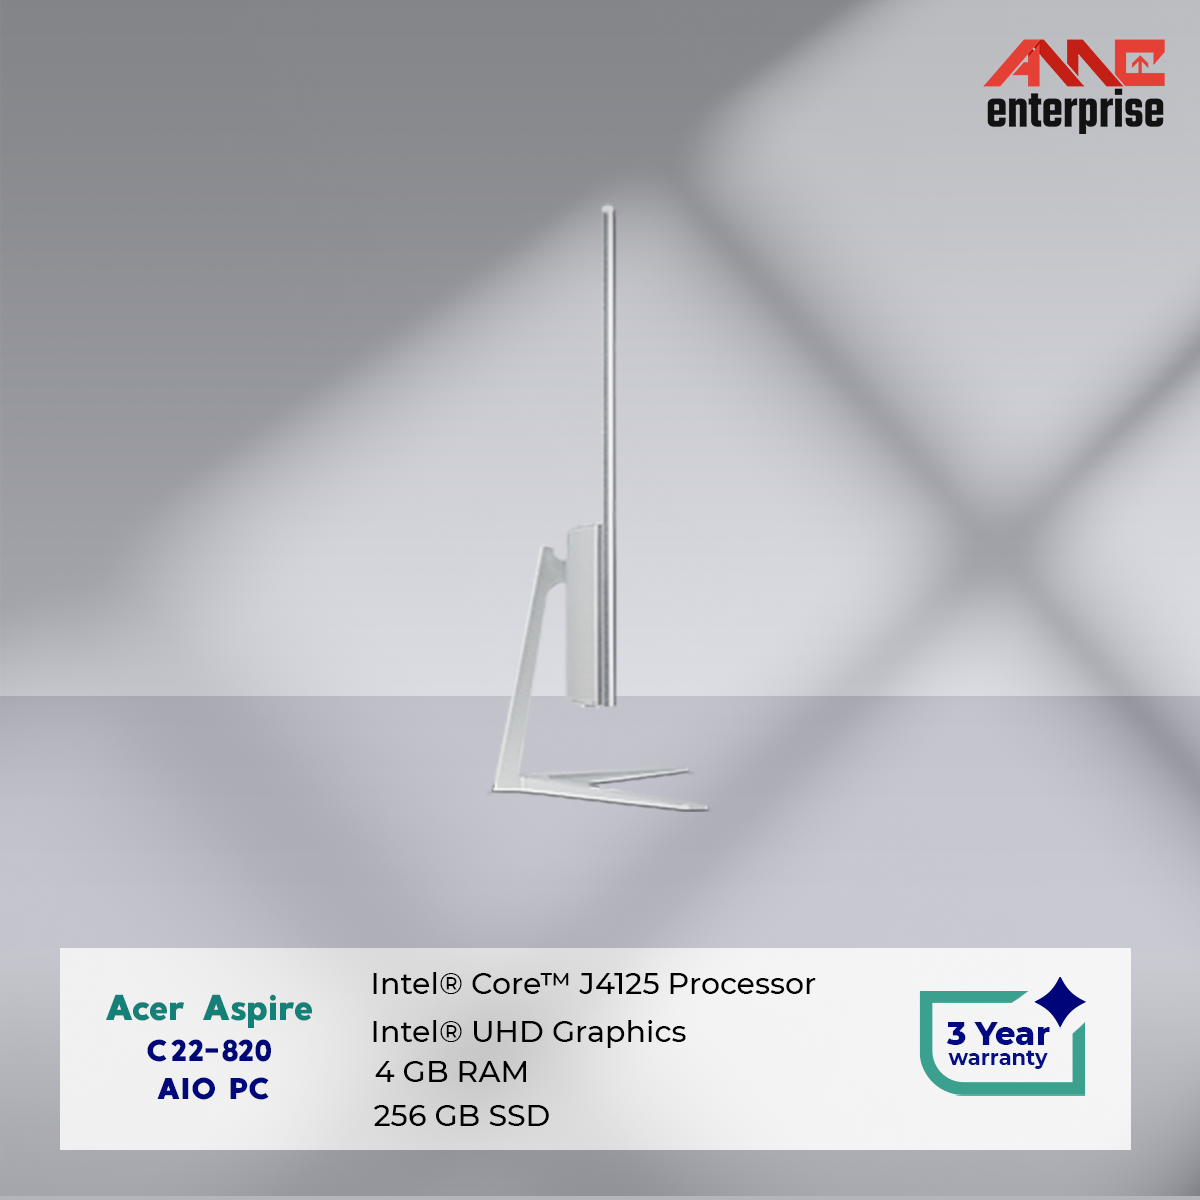 Acer aspire c22-820 AIO PC (7).png